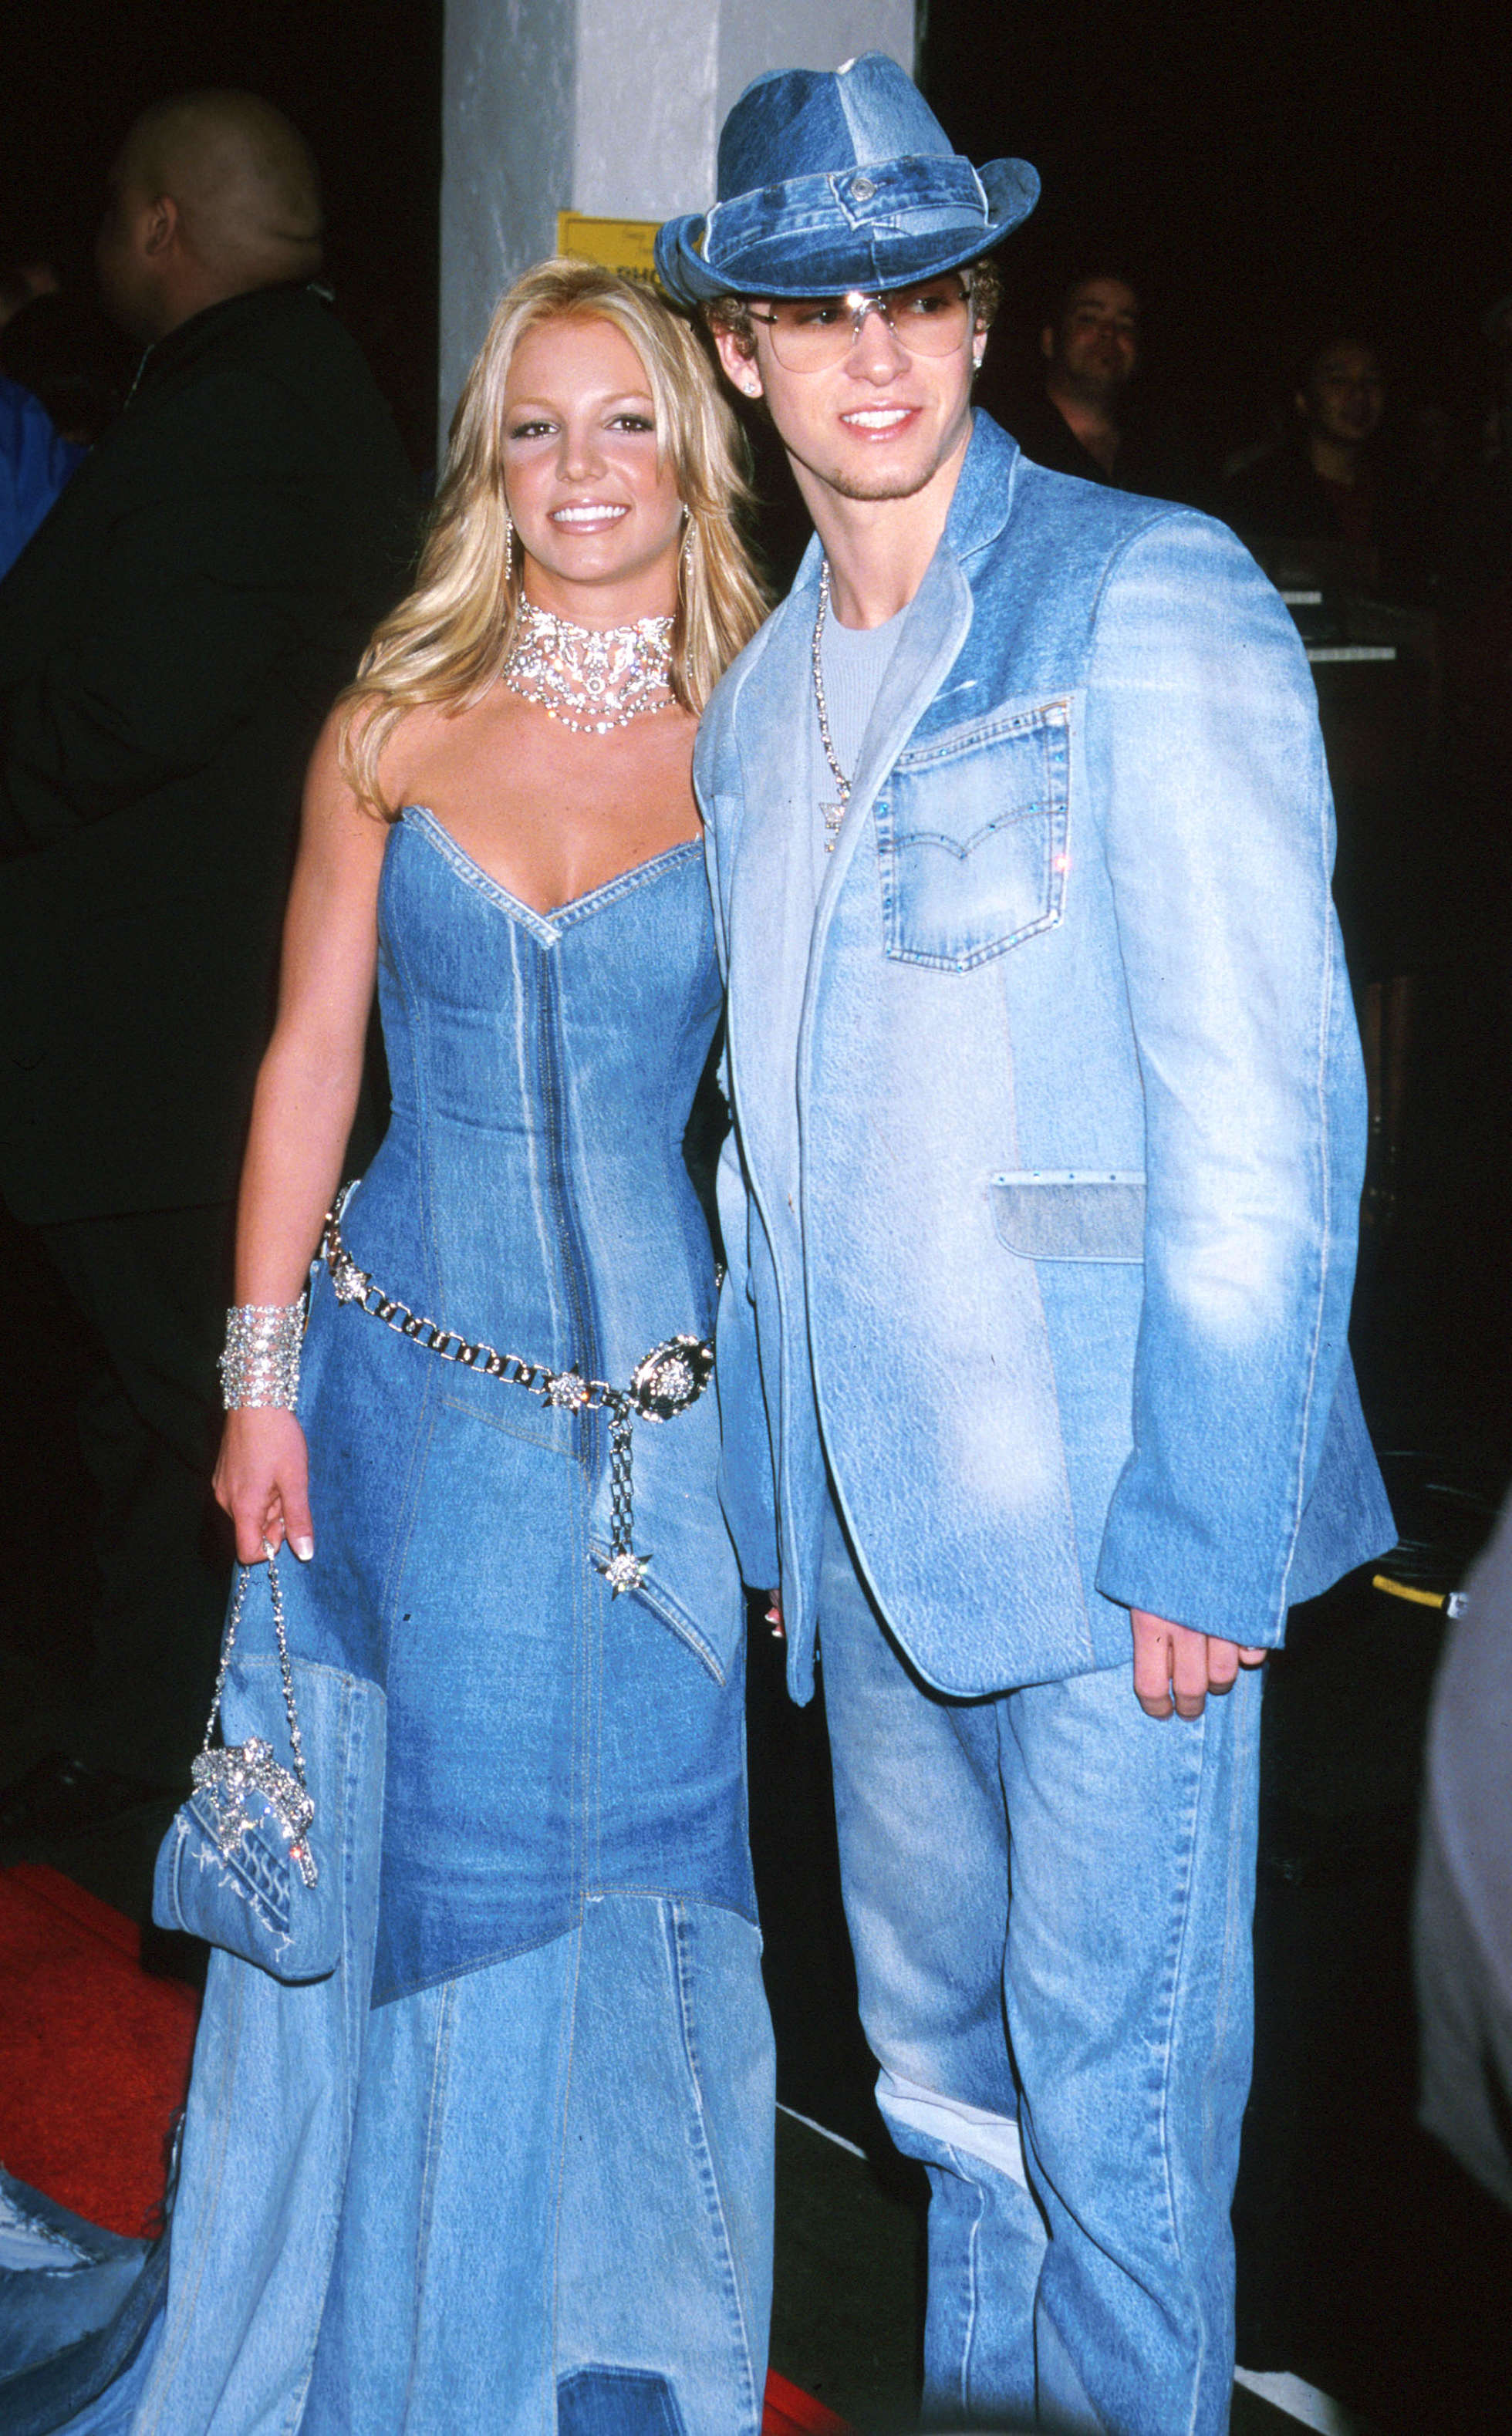 Brotney Spears och Justin Timberlake i matchande jeans-outfits.